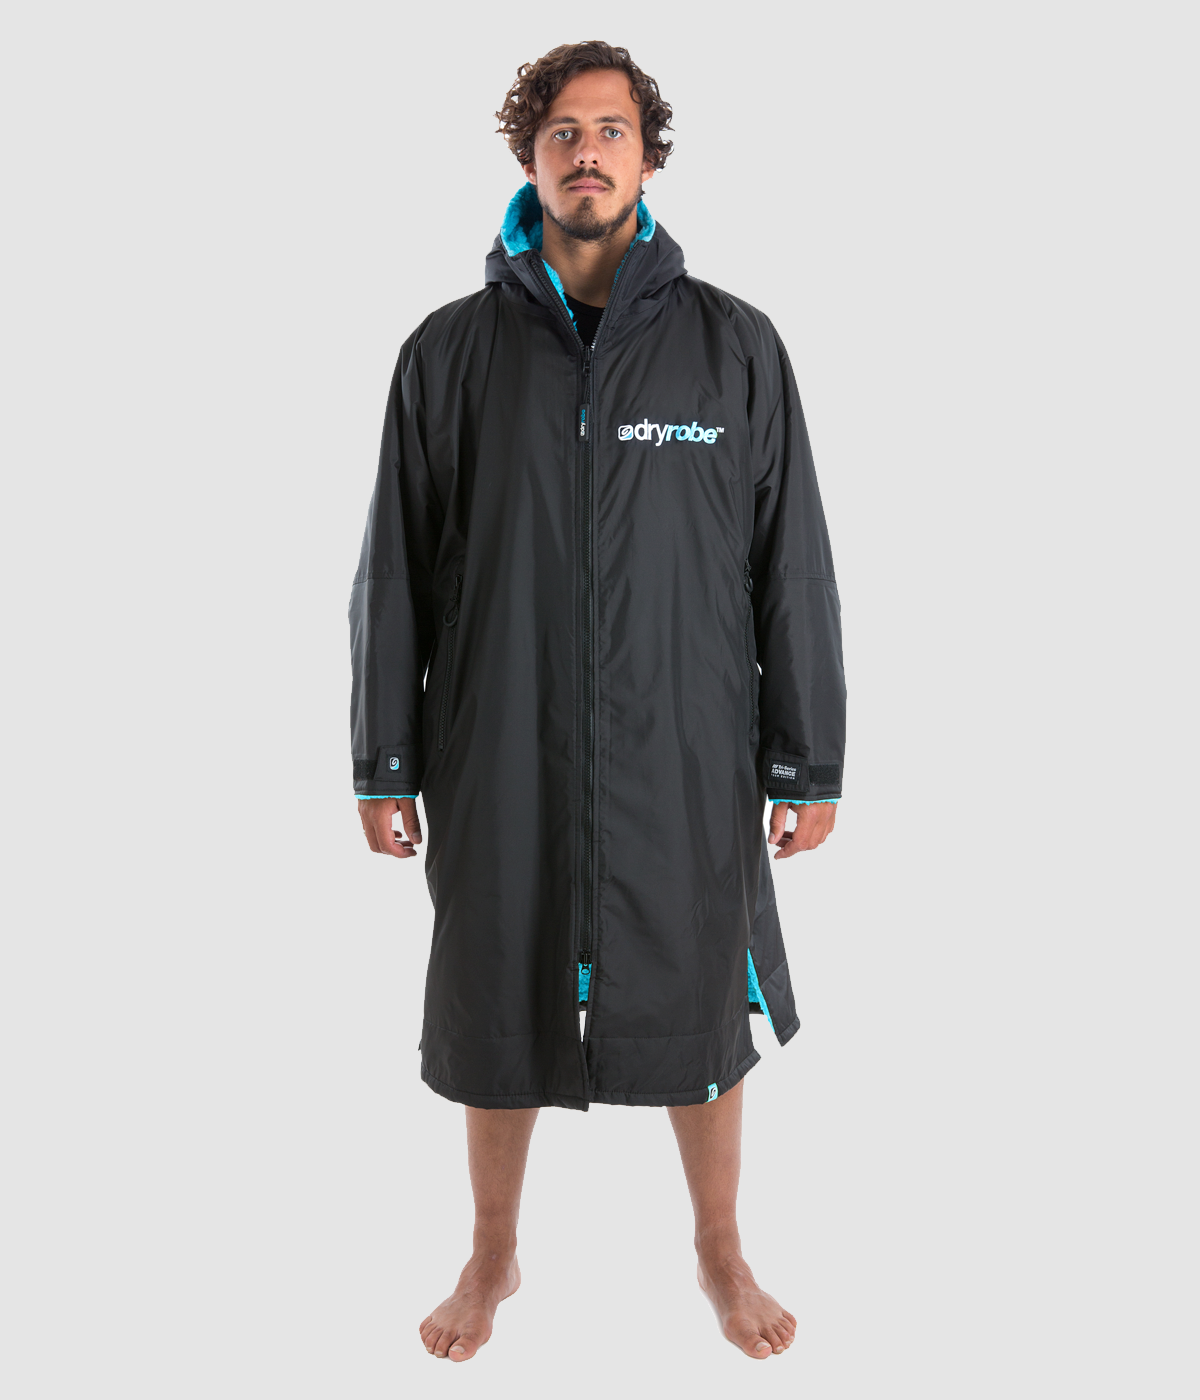 Surfers' Christmas Gift Ideas: Dryrobe Long Sleeve